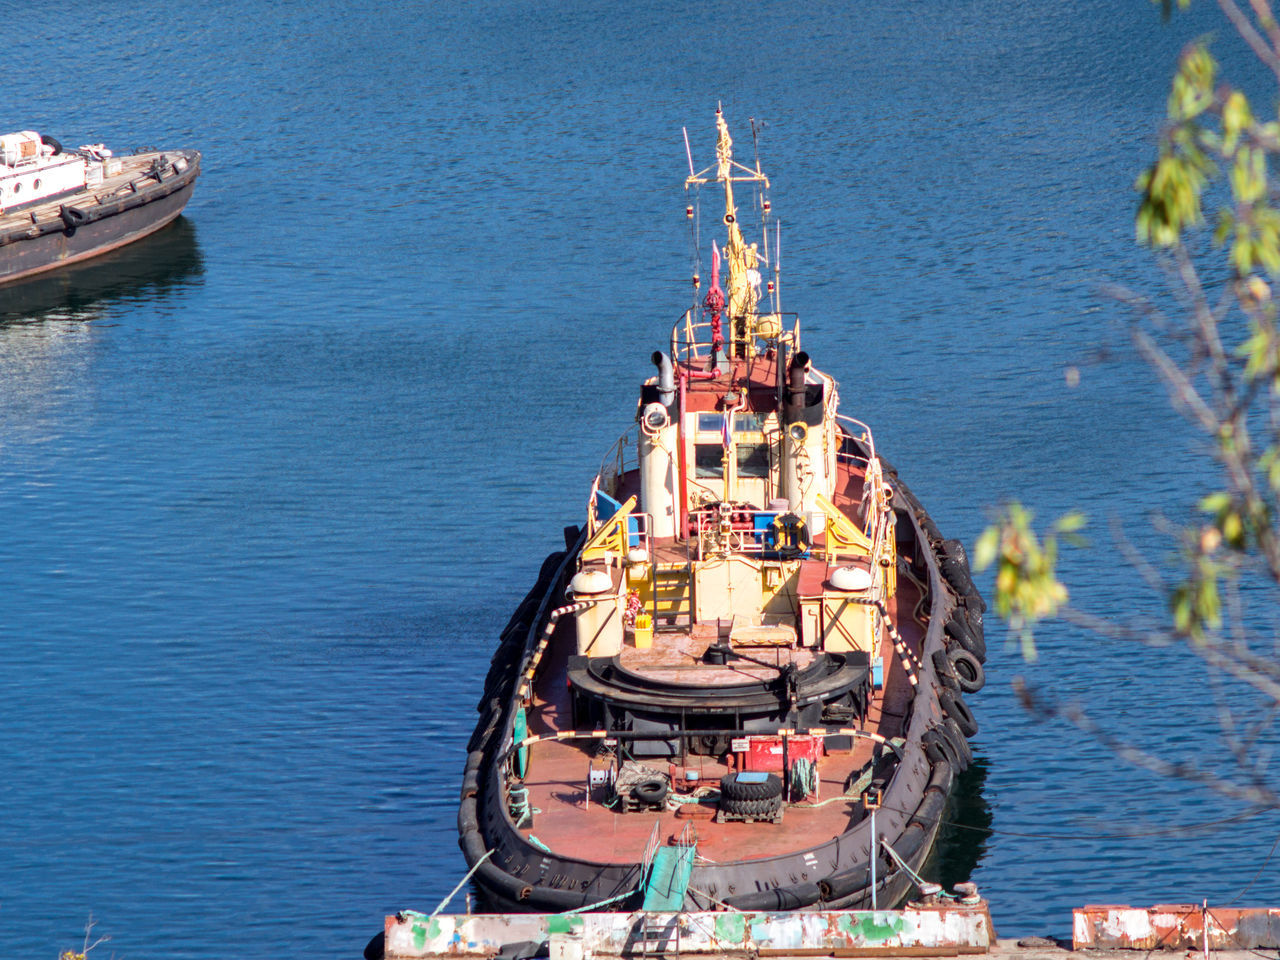 Approached Berth Boat Crimea Day Gawlet High Angle View Moored Outdoors Russia Sea Sevastopol  Tug Tugboat Water